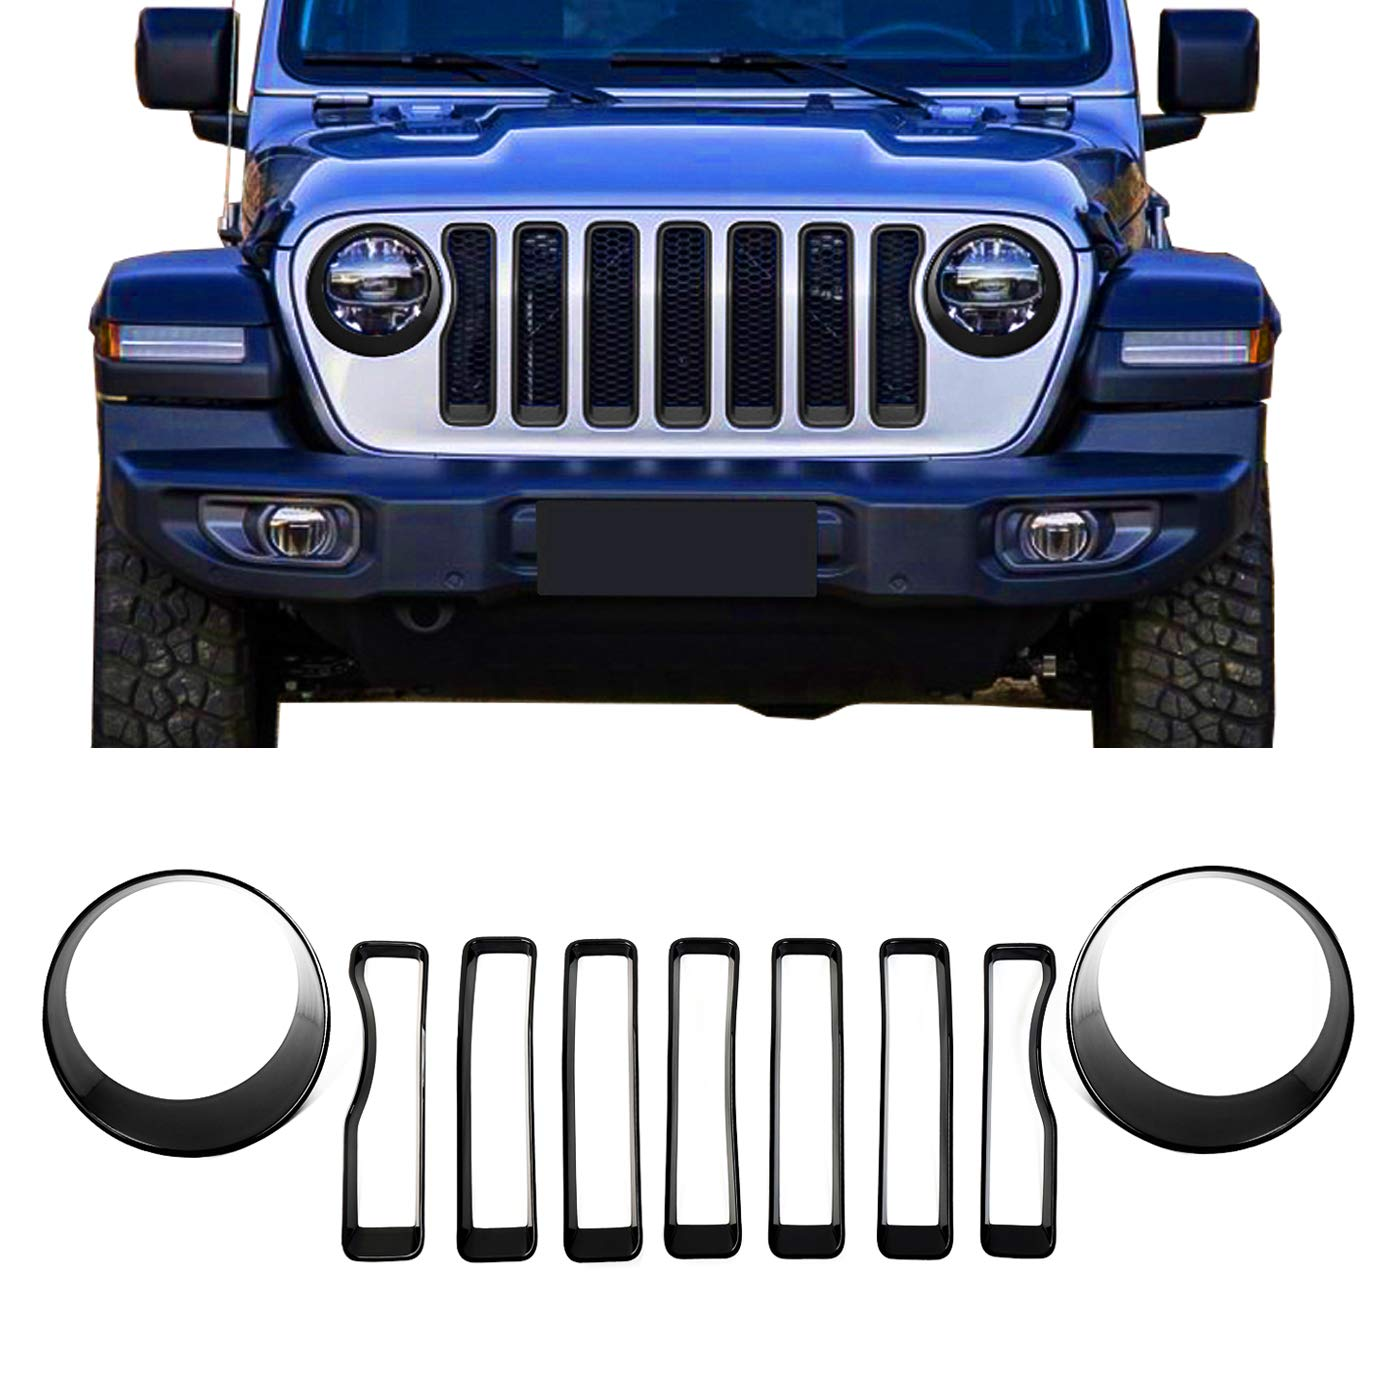 Pack of 9 omotor Black Front Grille Grill Inserts /& Headlight Covers Trim for 2018 2019 Jeep Wrangler JL JLU Sport//Sport S